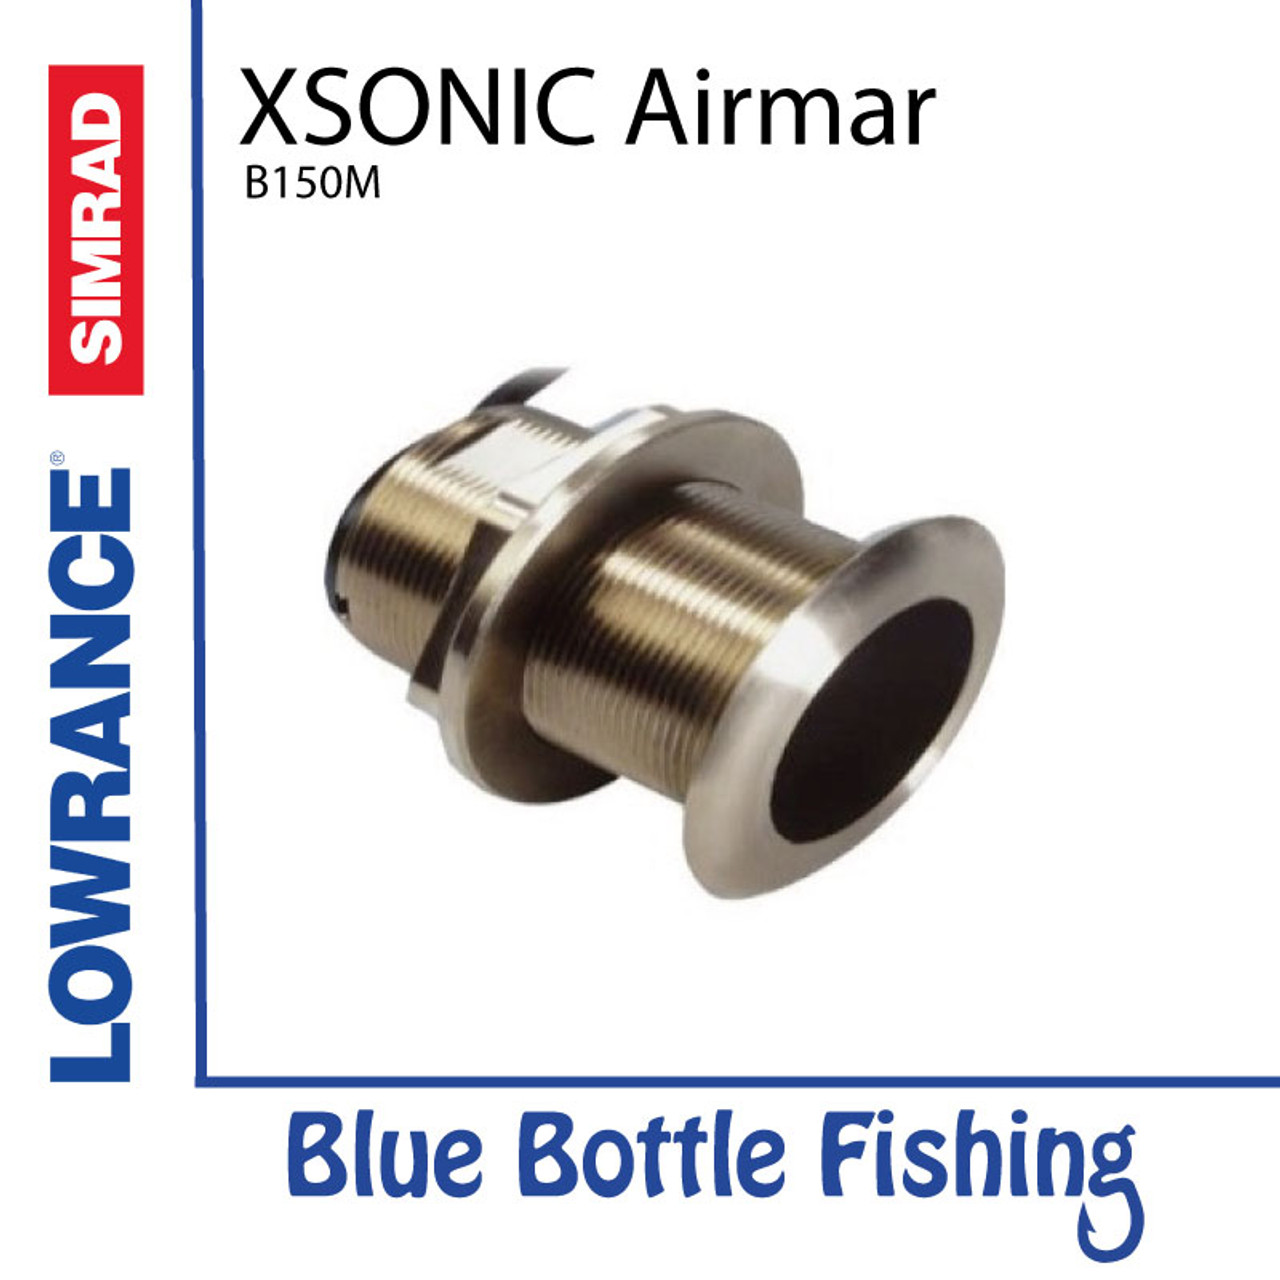 XSONIC Airmar B150M 12deg Thru Hull transducer Bronze | Blue Bottle